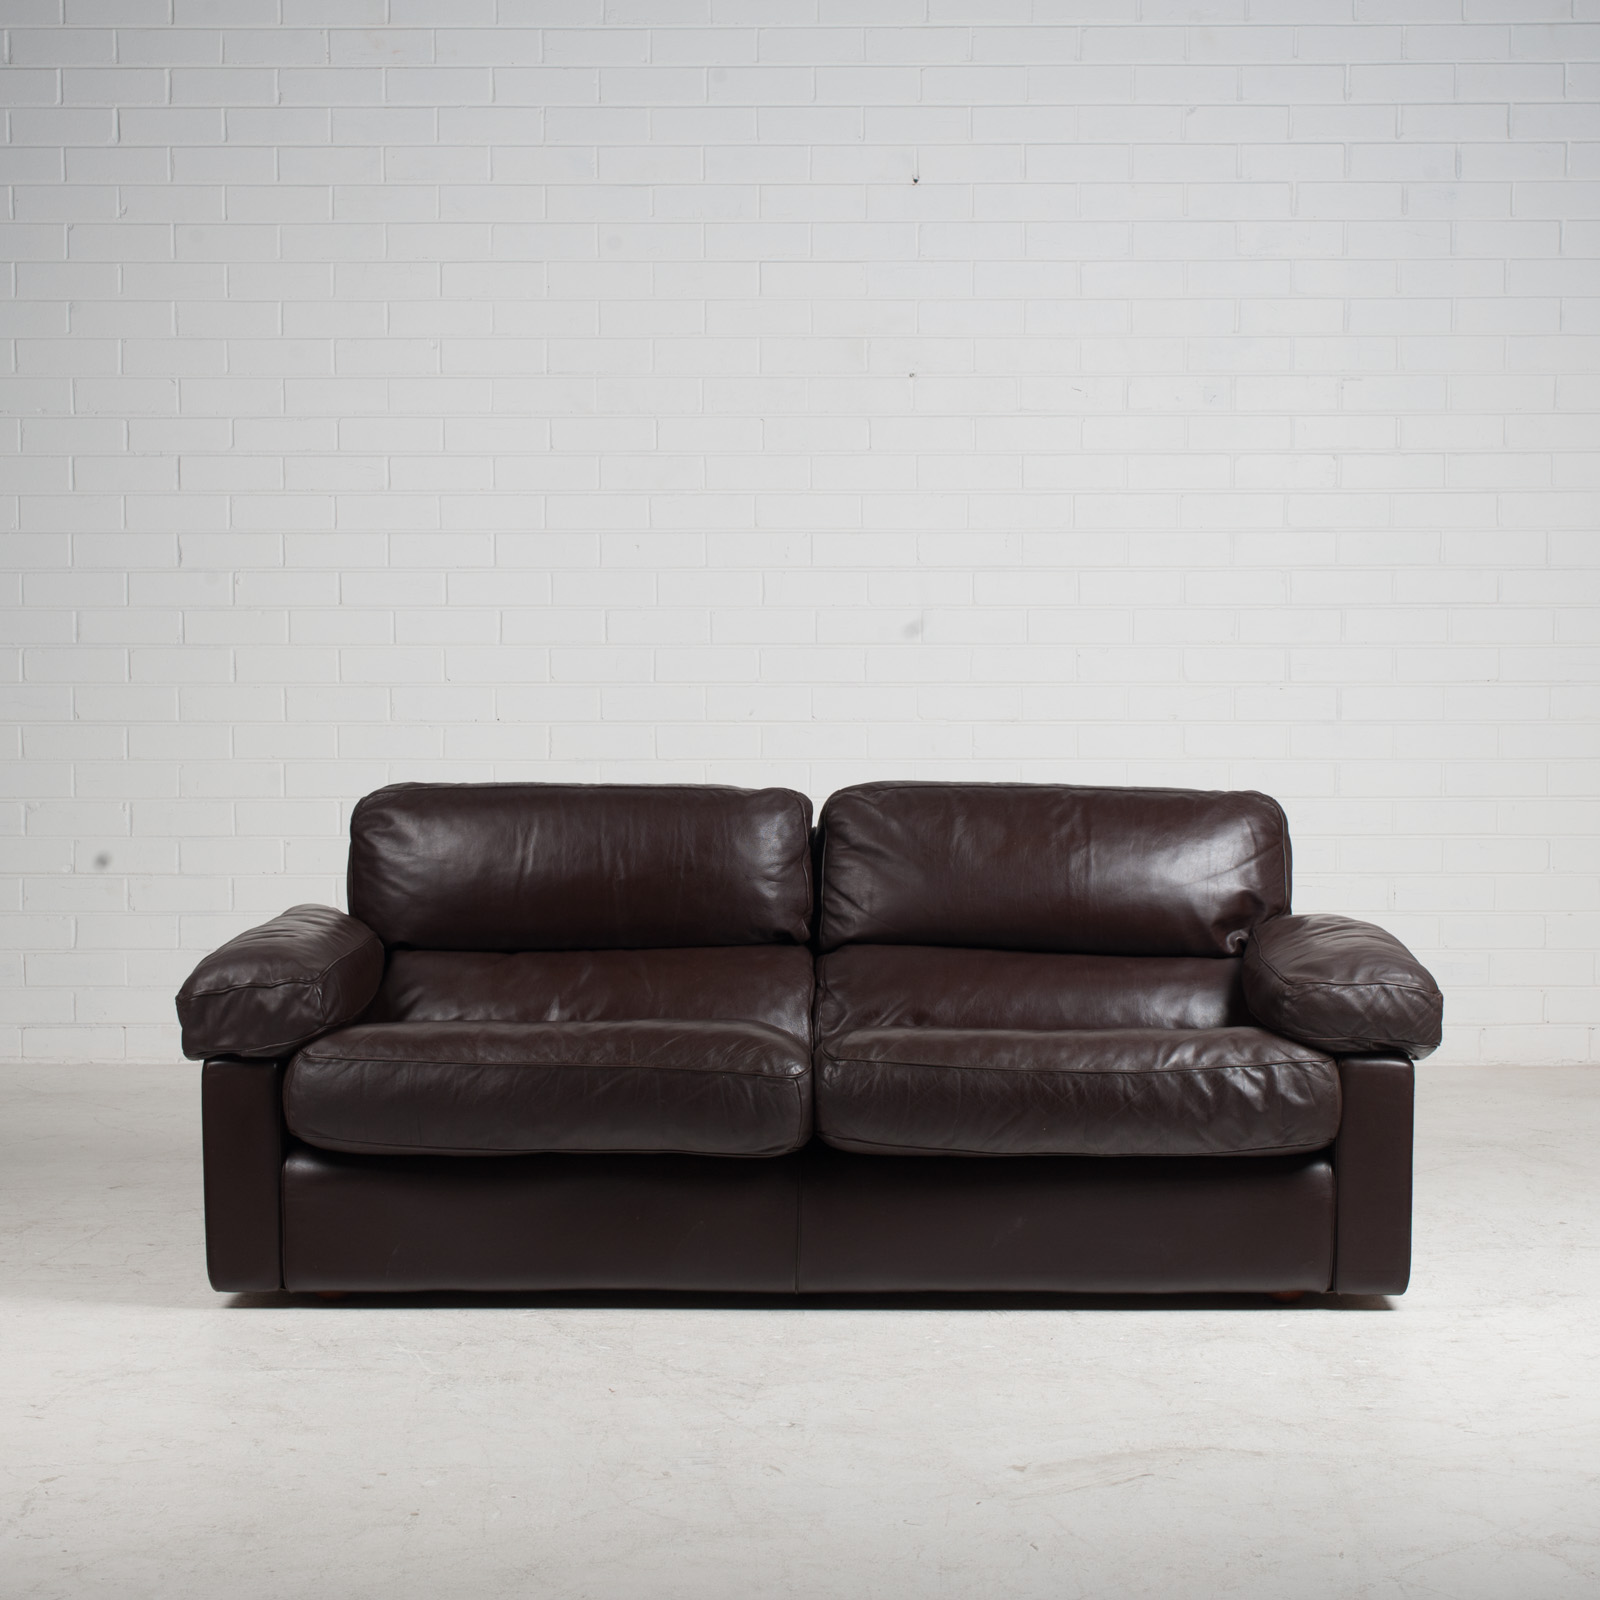 2 Seat Sofa By Tito Agnoli For Poltrona Frau In Chocolate Leather 1970s Italy 02